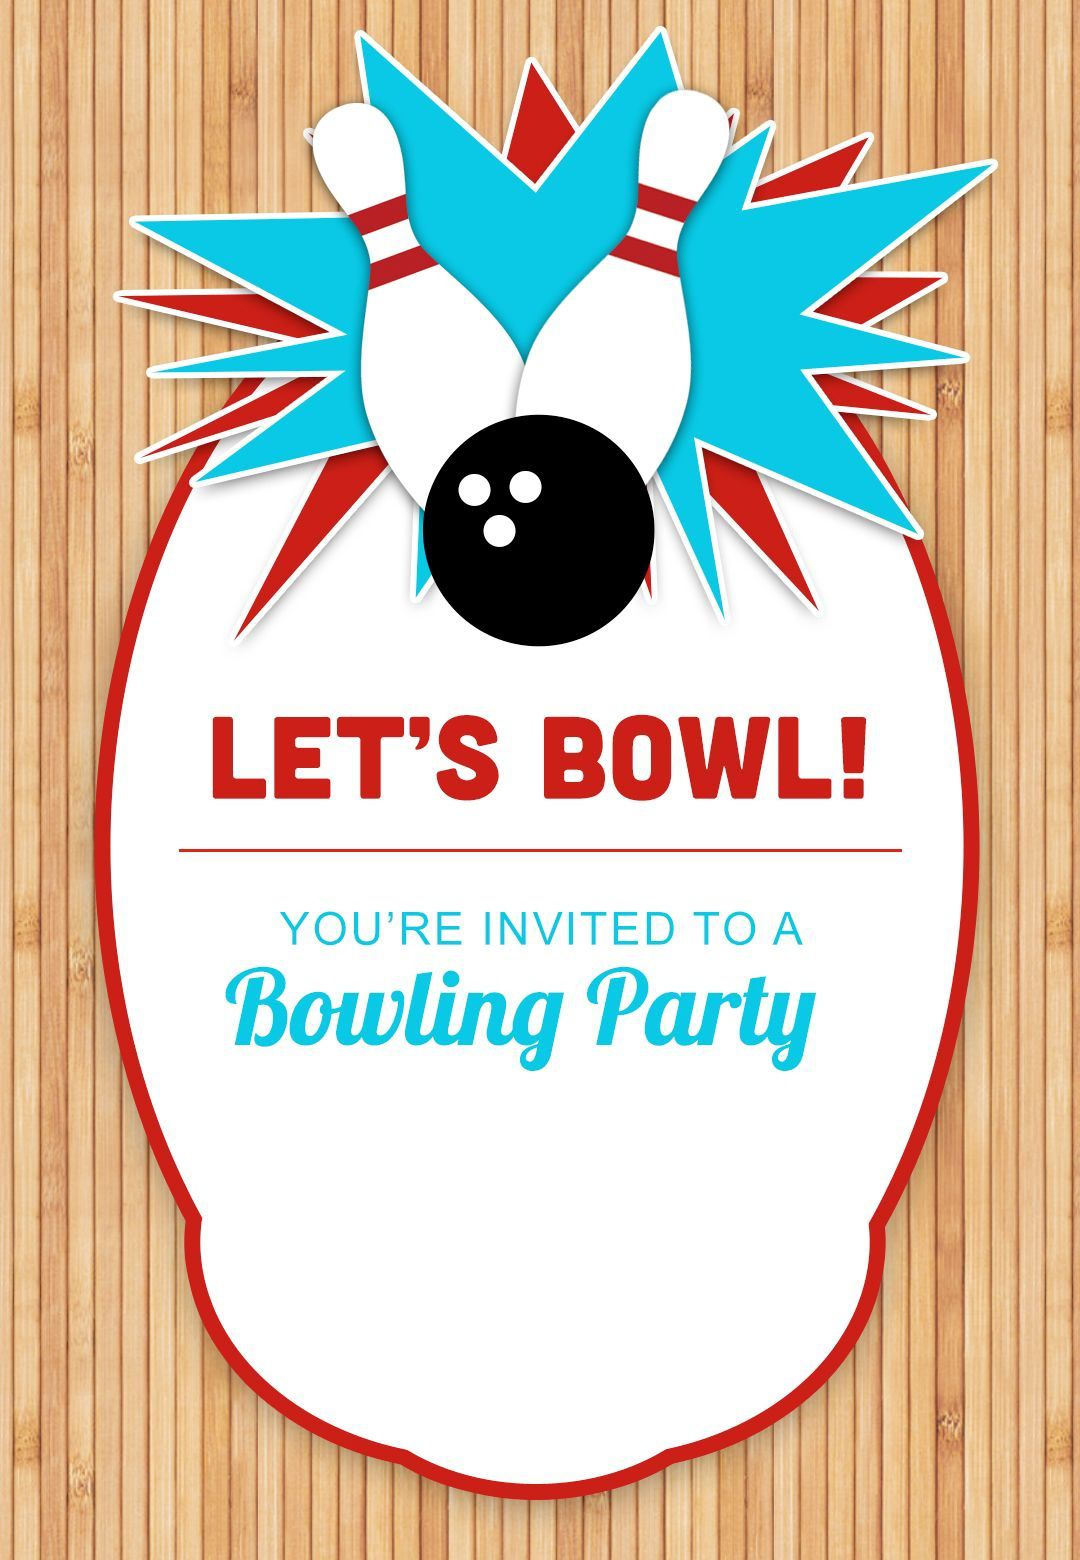 003 Marvelou Bowling Party Invite Printable Free Sample  Birthday Invitation GirlFull